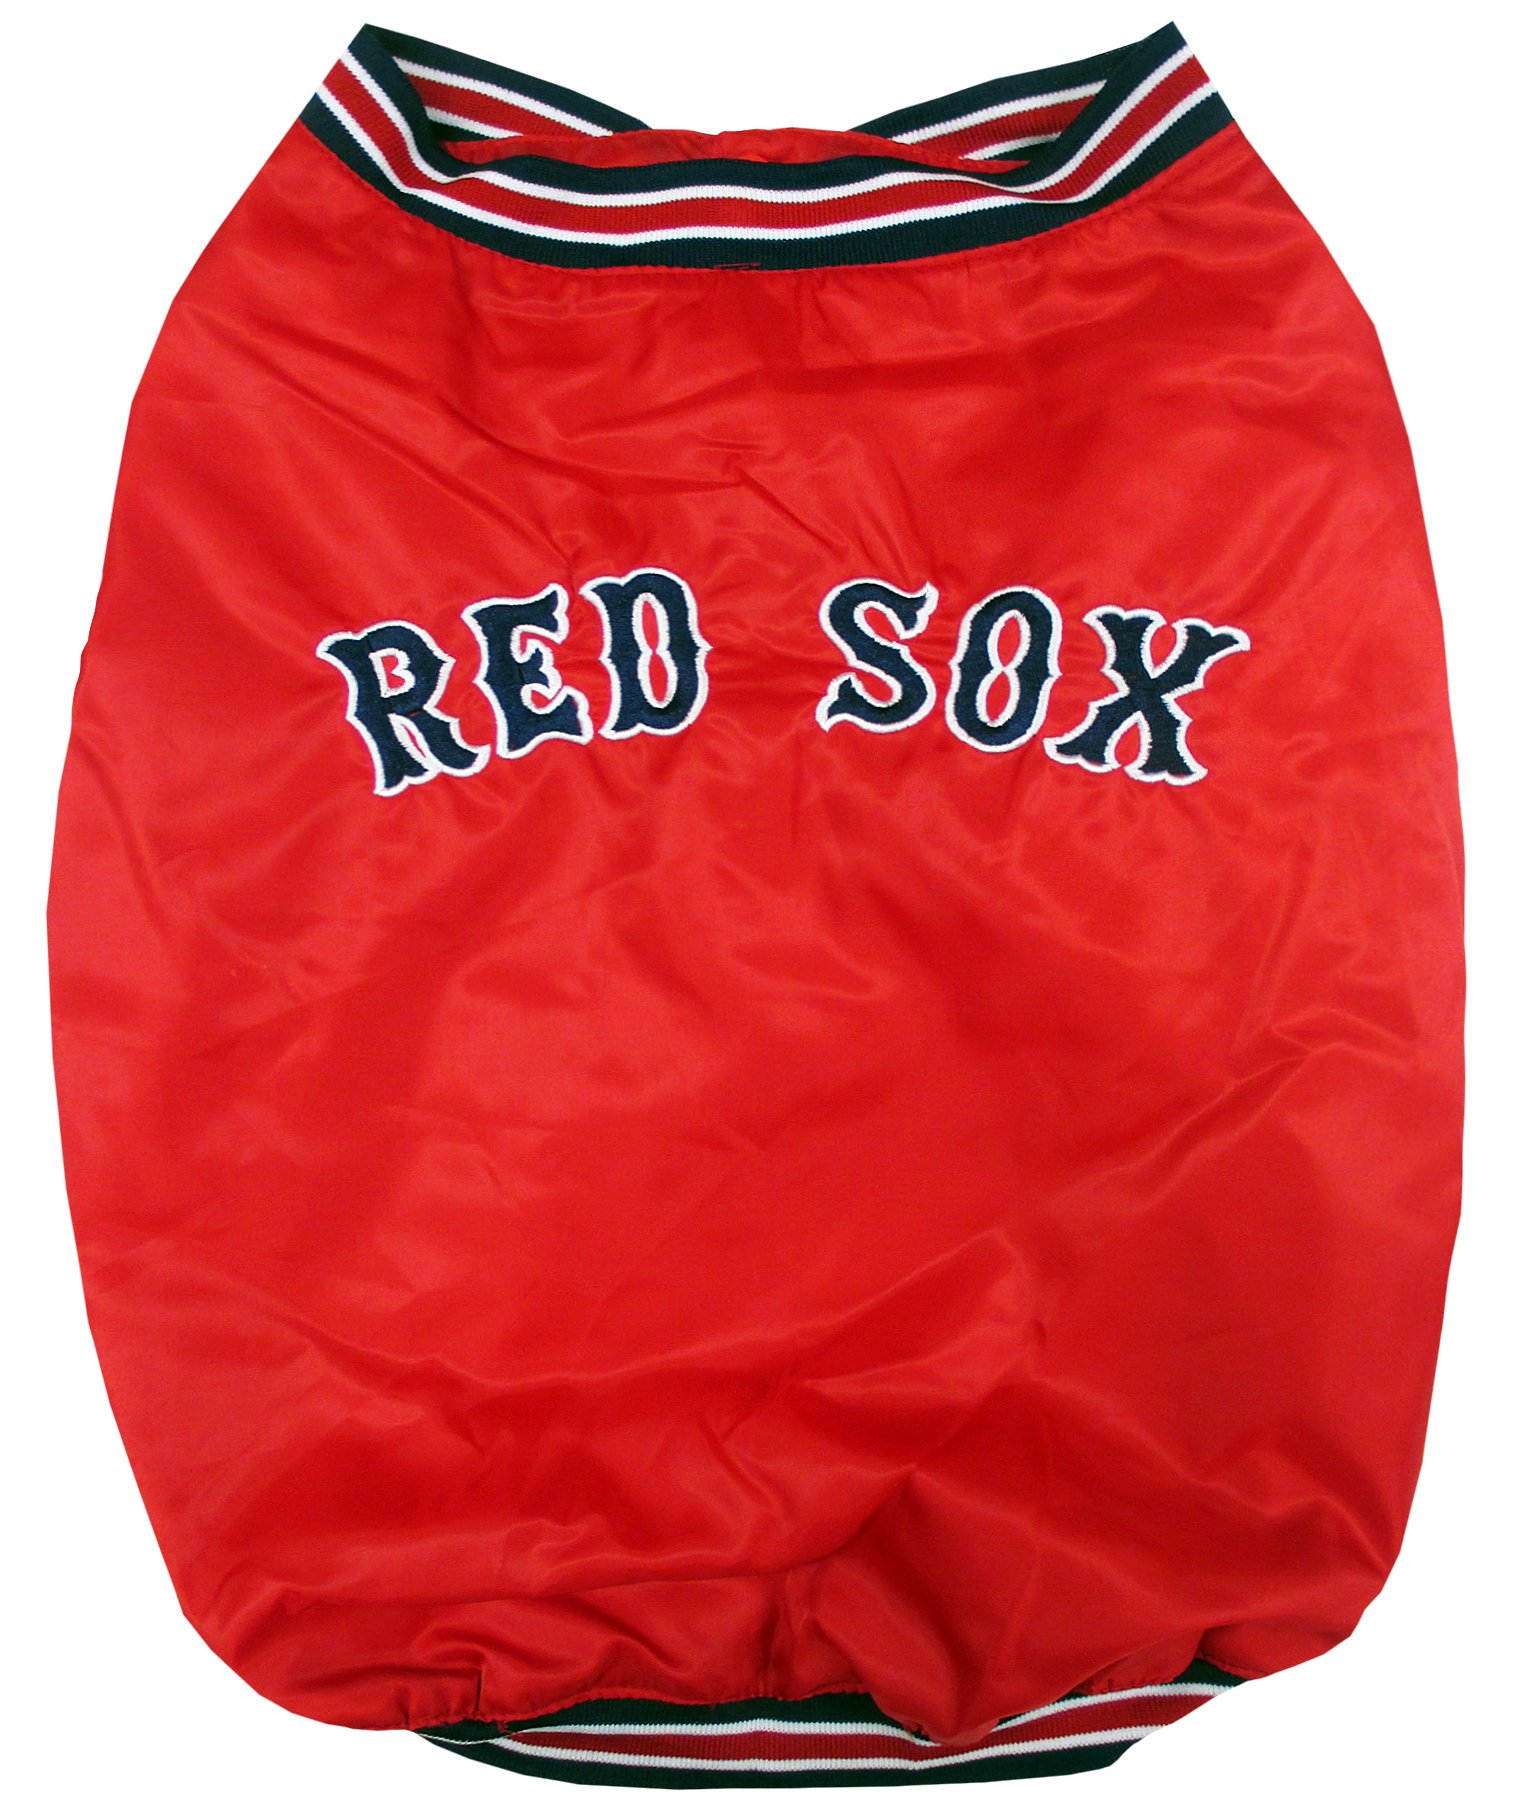 Pets First MLB BOSTON RED SOX DUGOUT JACKET for DOGS & CATS, Small. - Warm, Team Color & LOGO with Velcro closure